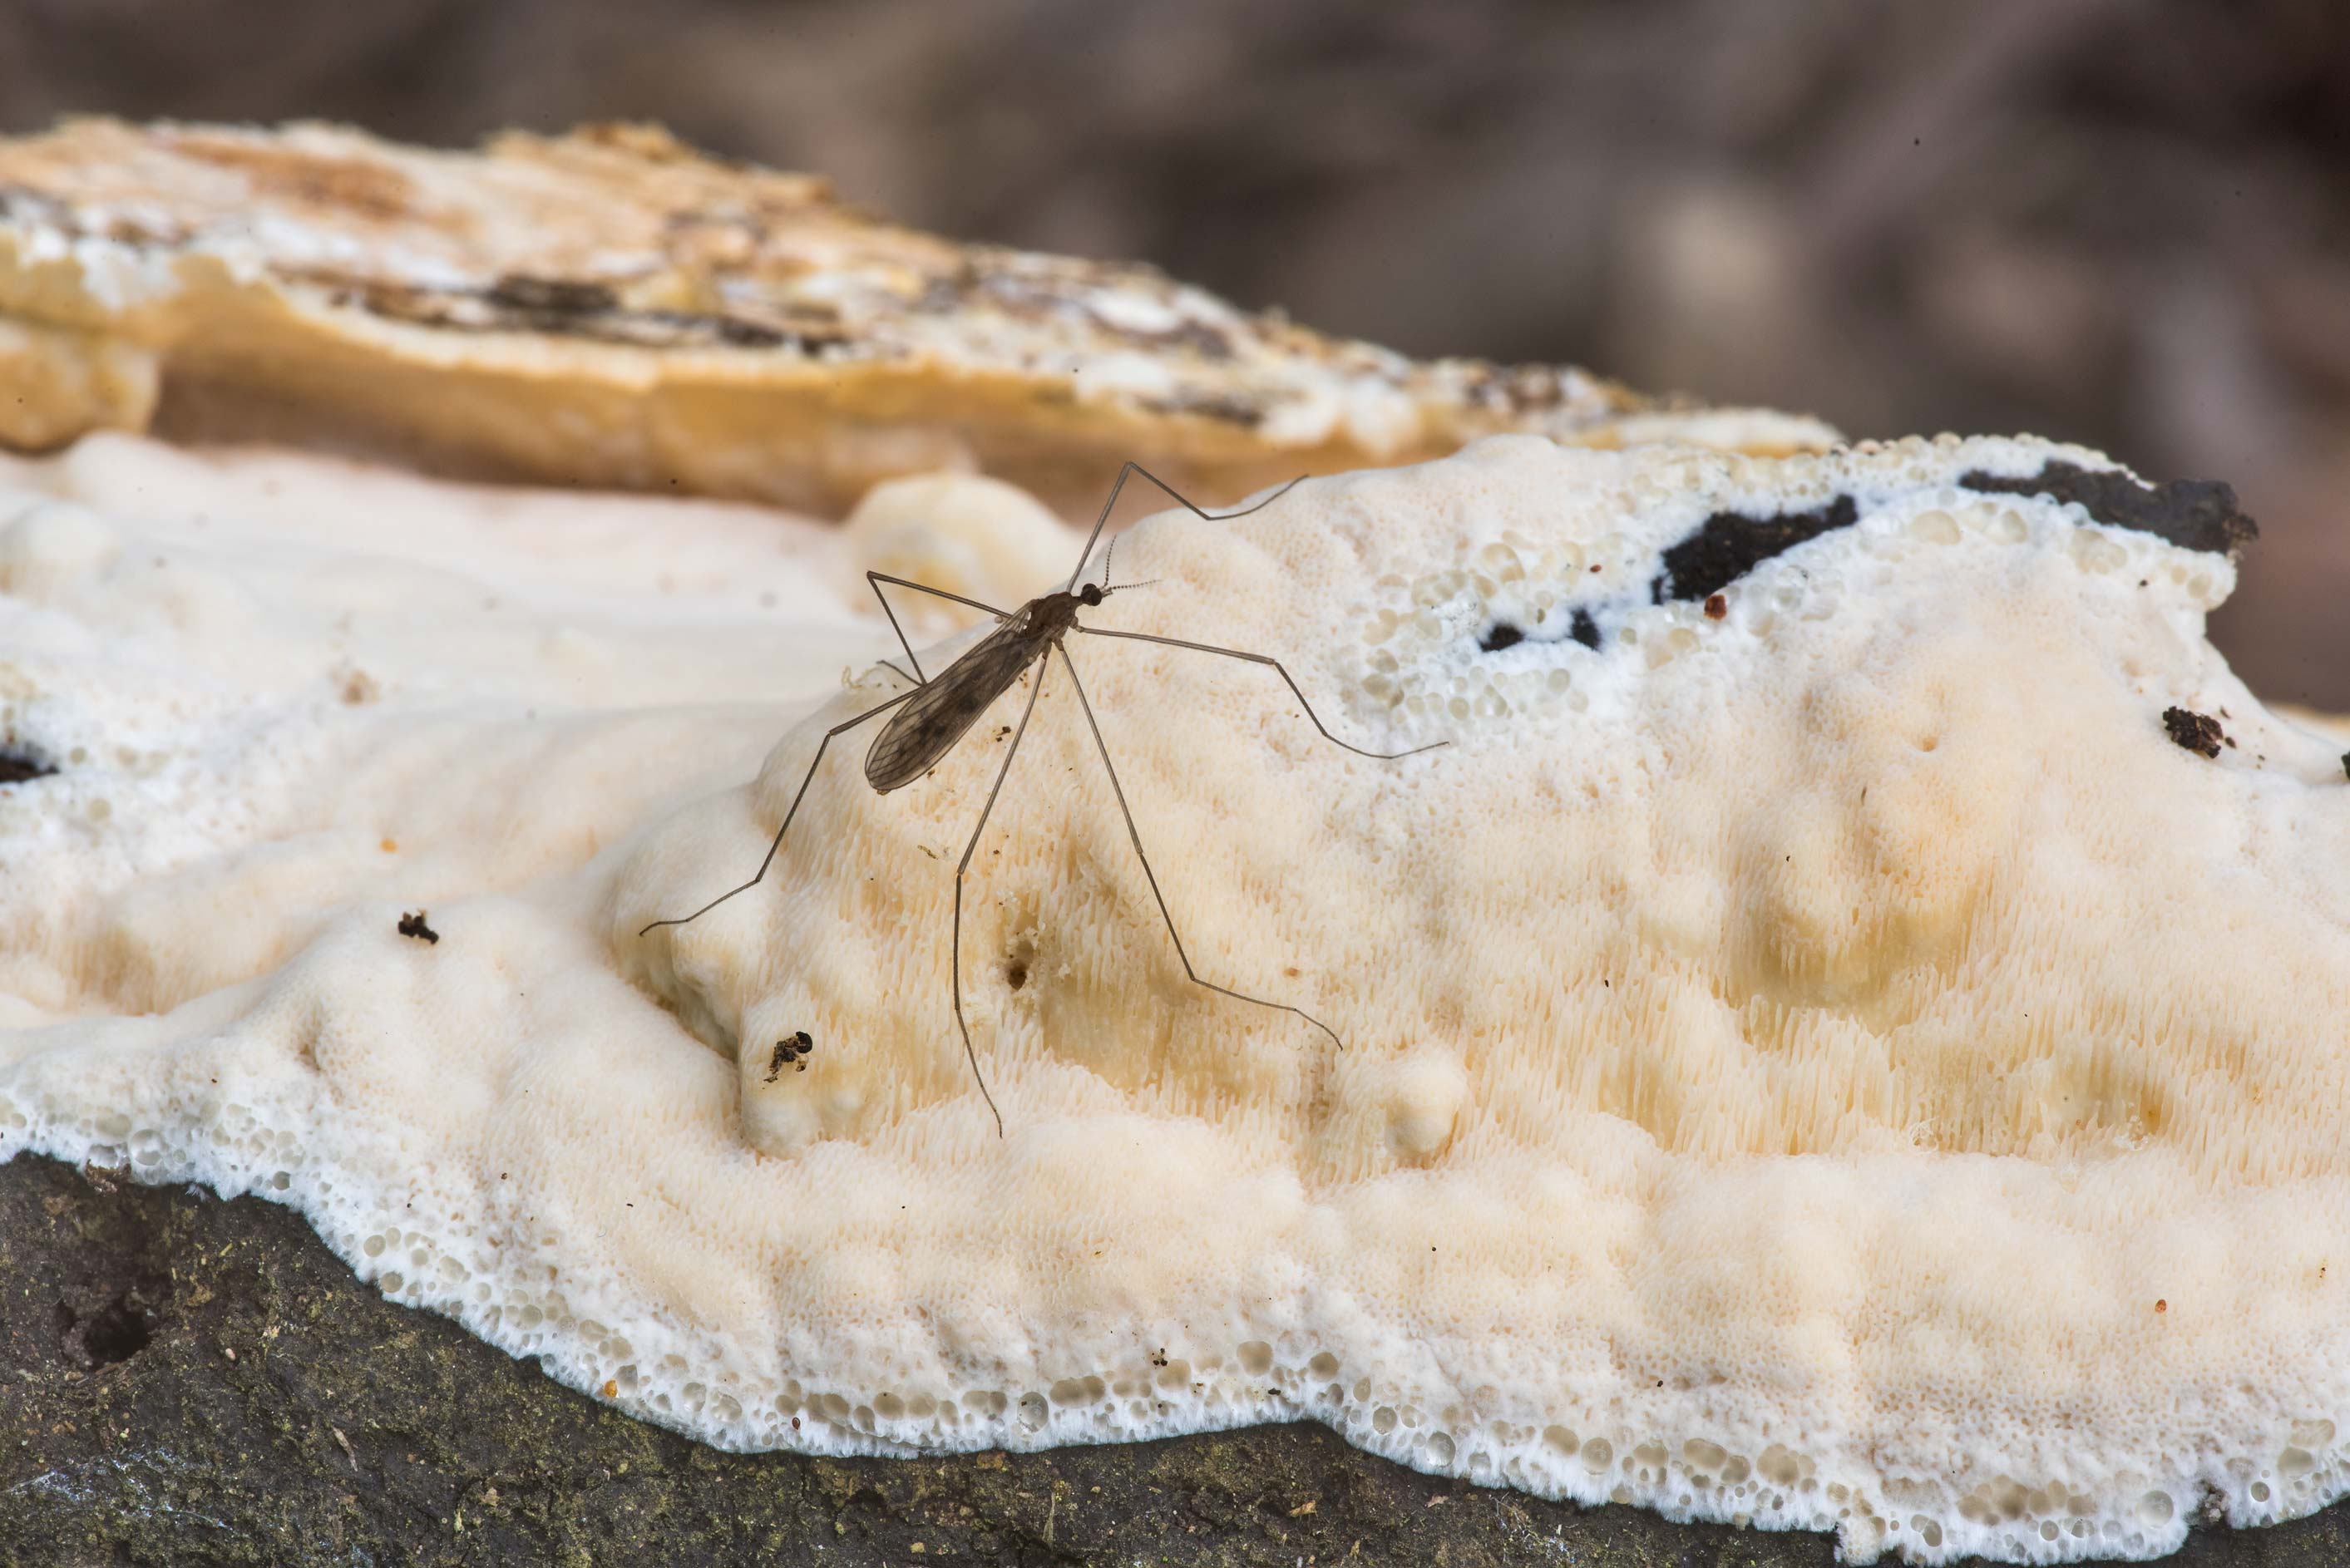 Mosquito on a resupinate polypore mushroom of a...Creek Park. College Station, Texas